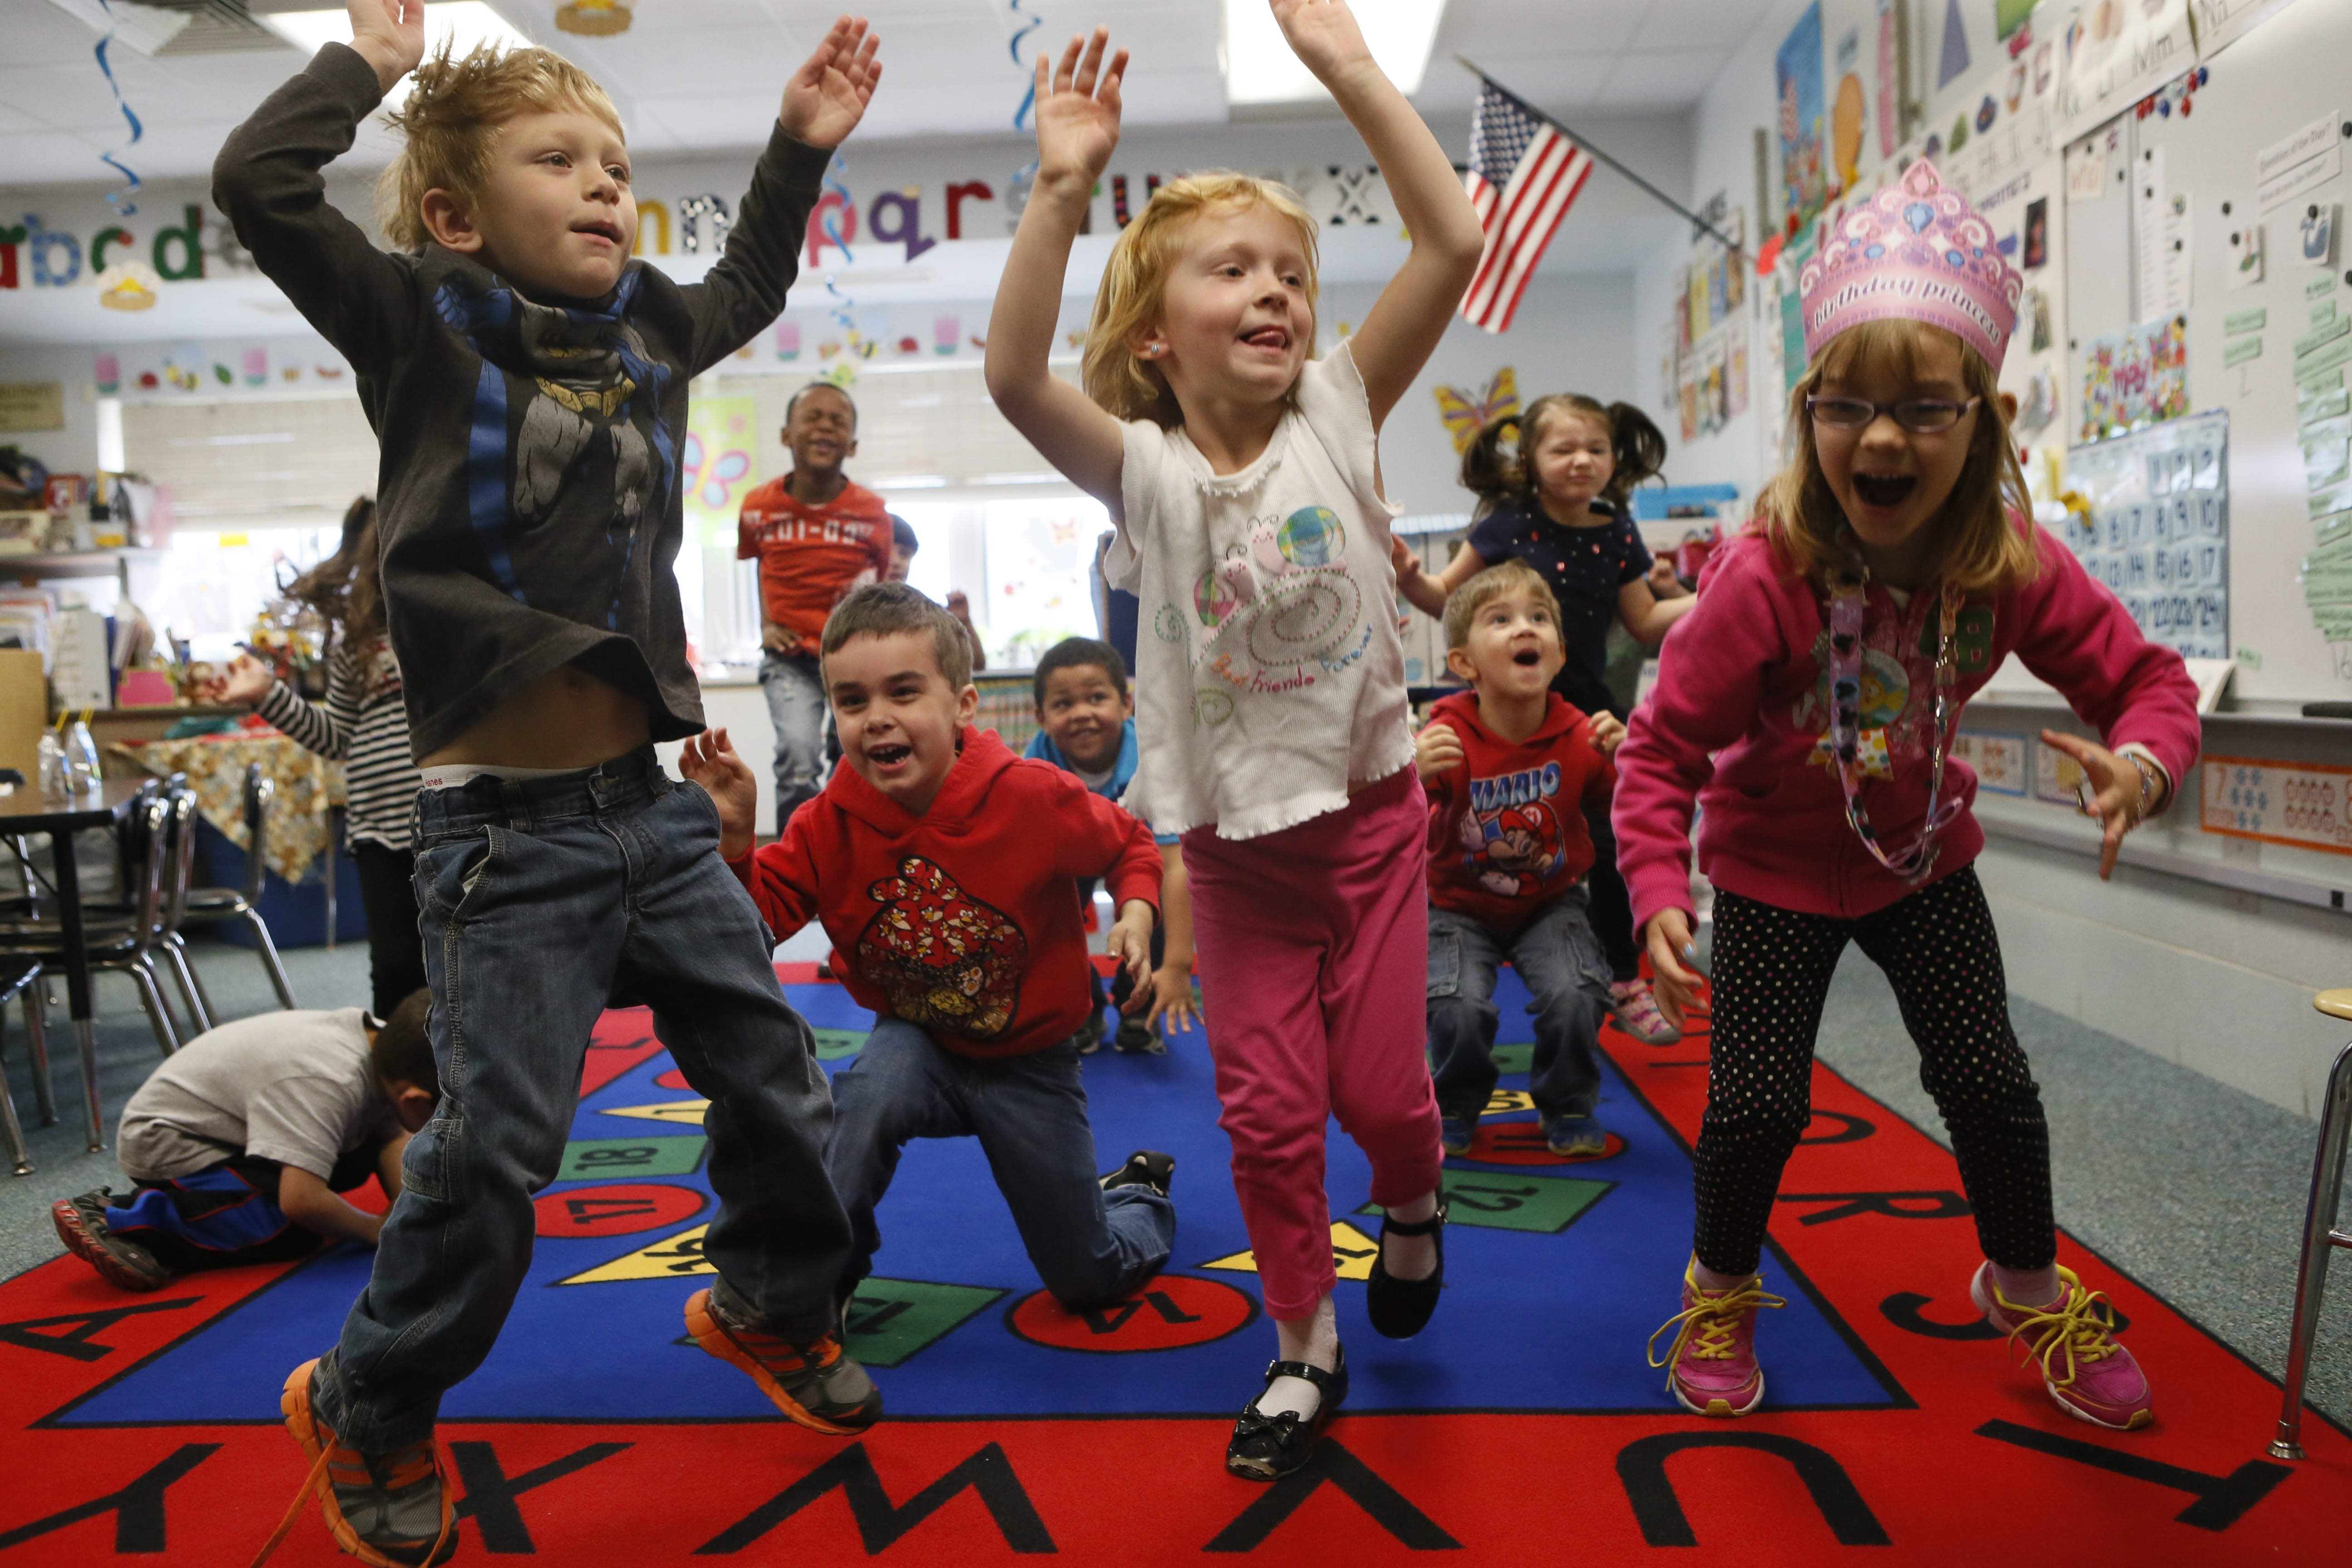 Students in the pre-K program at Willow Ridge Elementary School, part of Sweet Home Central Schools, jump up in the air like popcorn kernels during a dance activity.